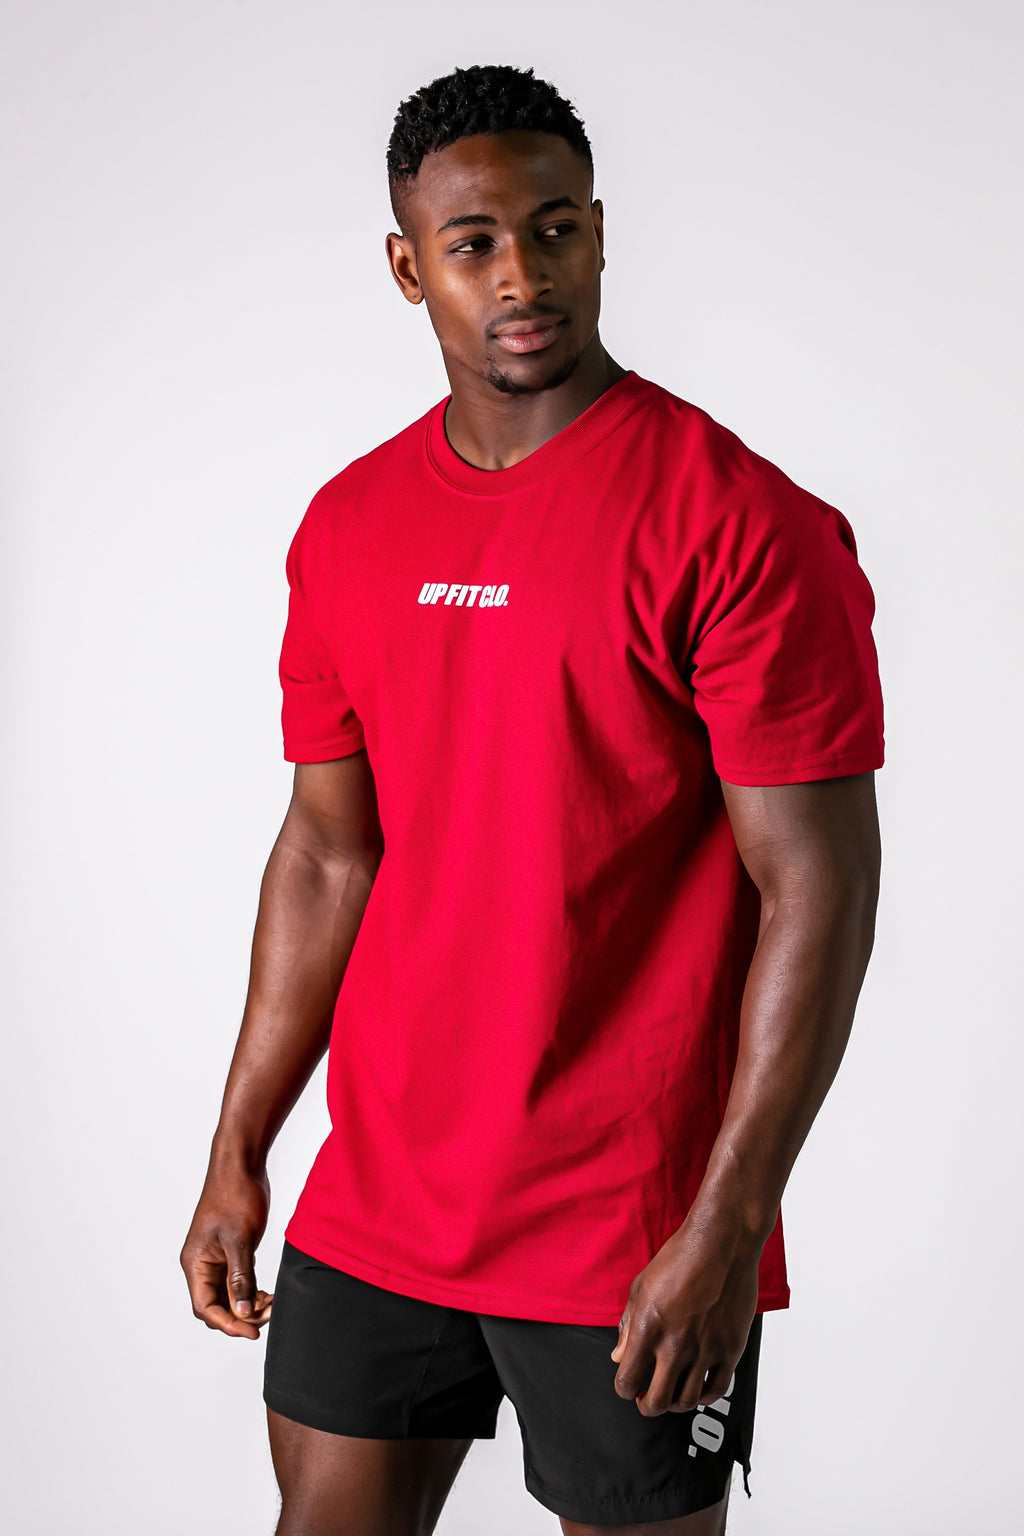 UPFITCLO BASIC COTTON SHIRT RED